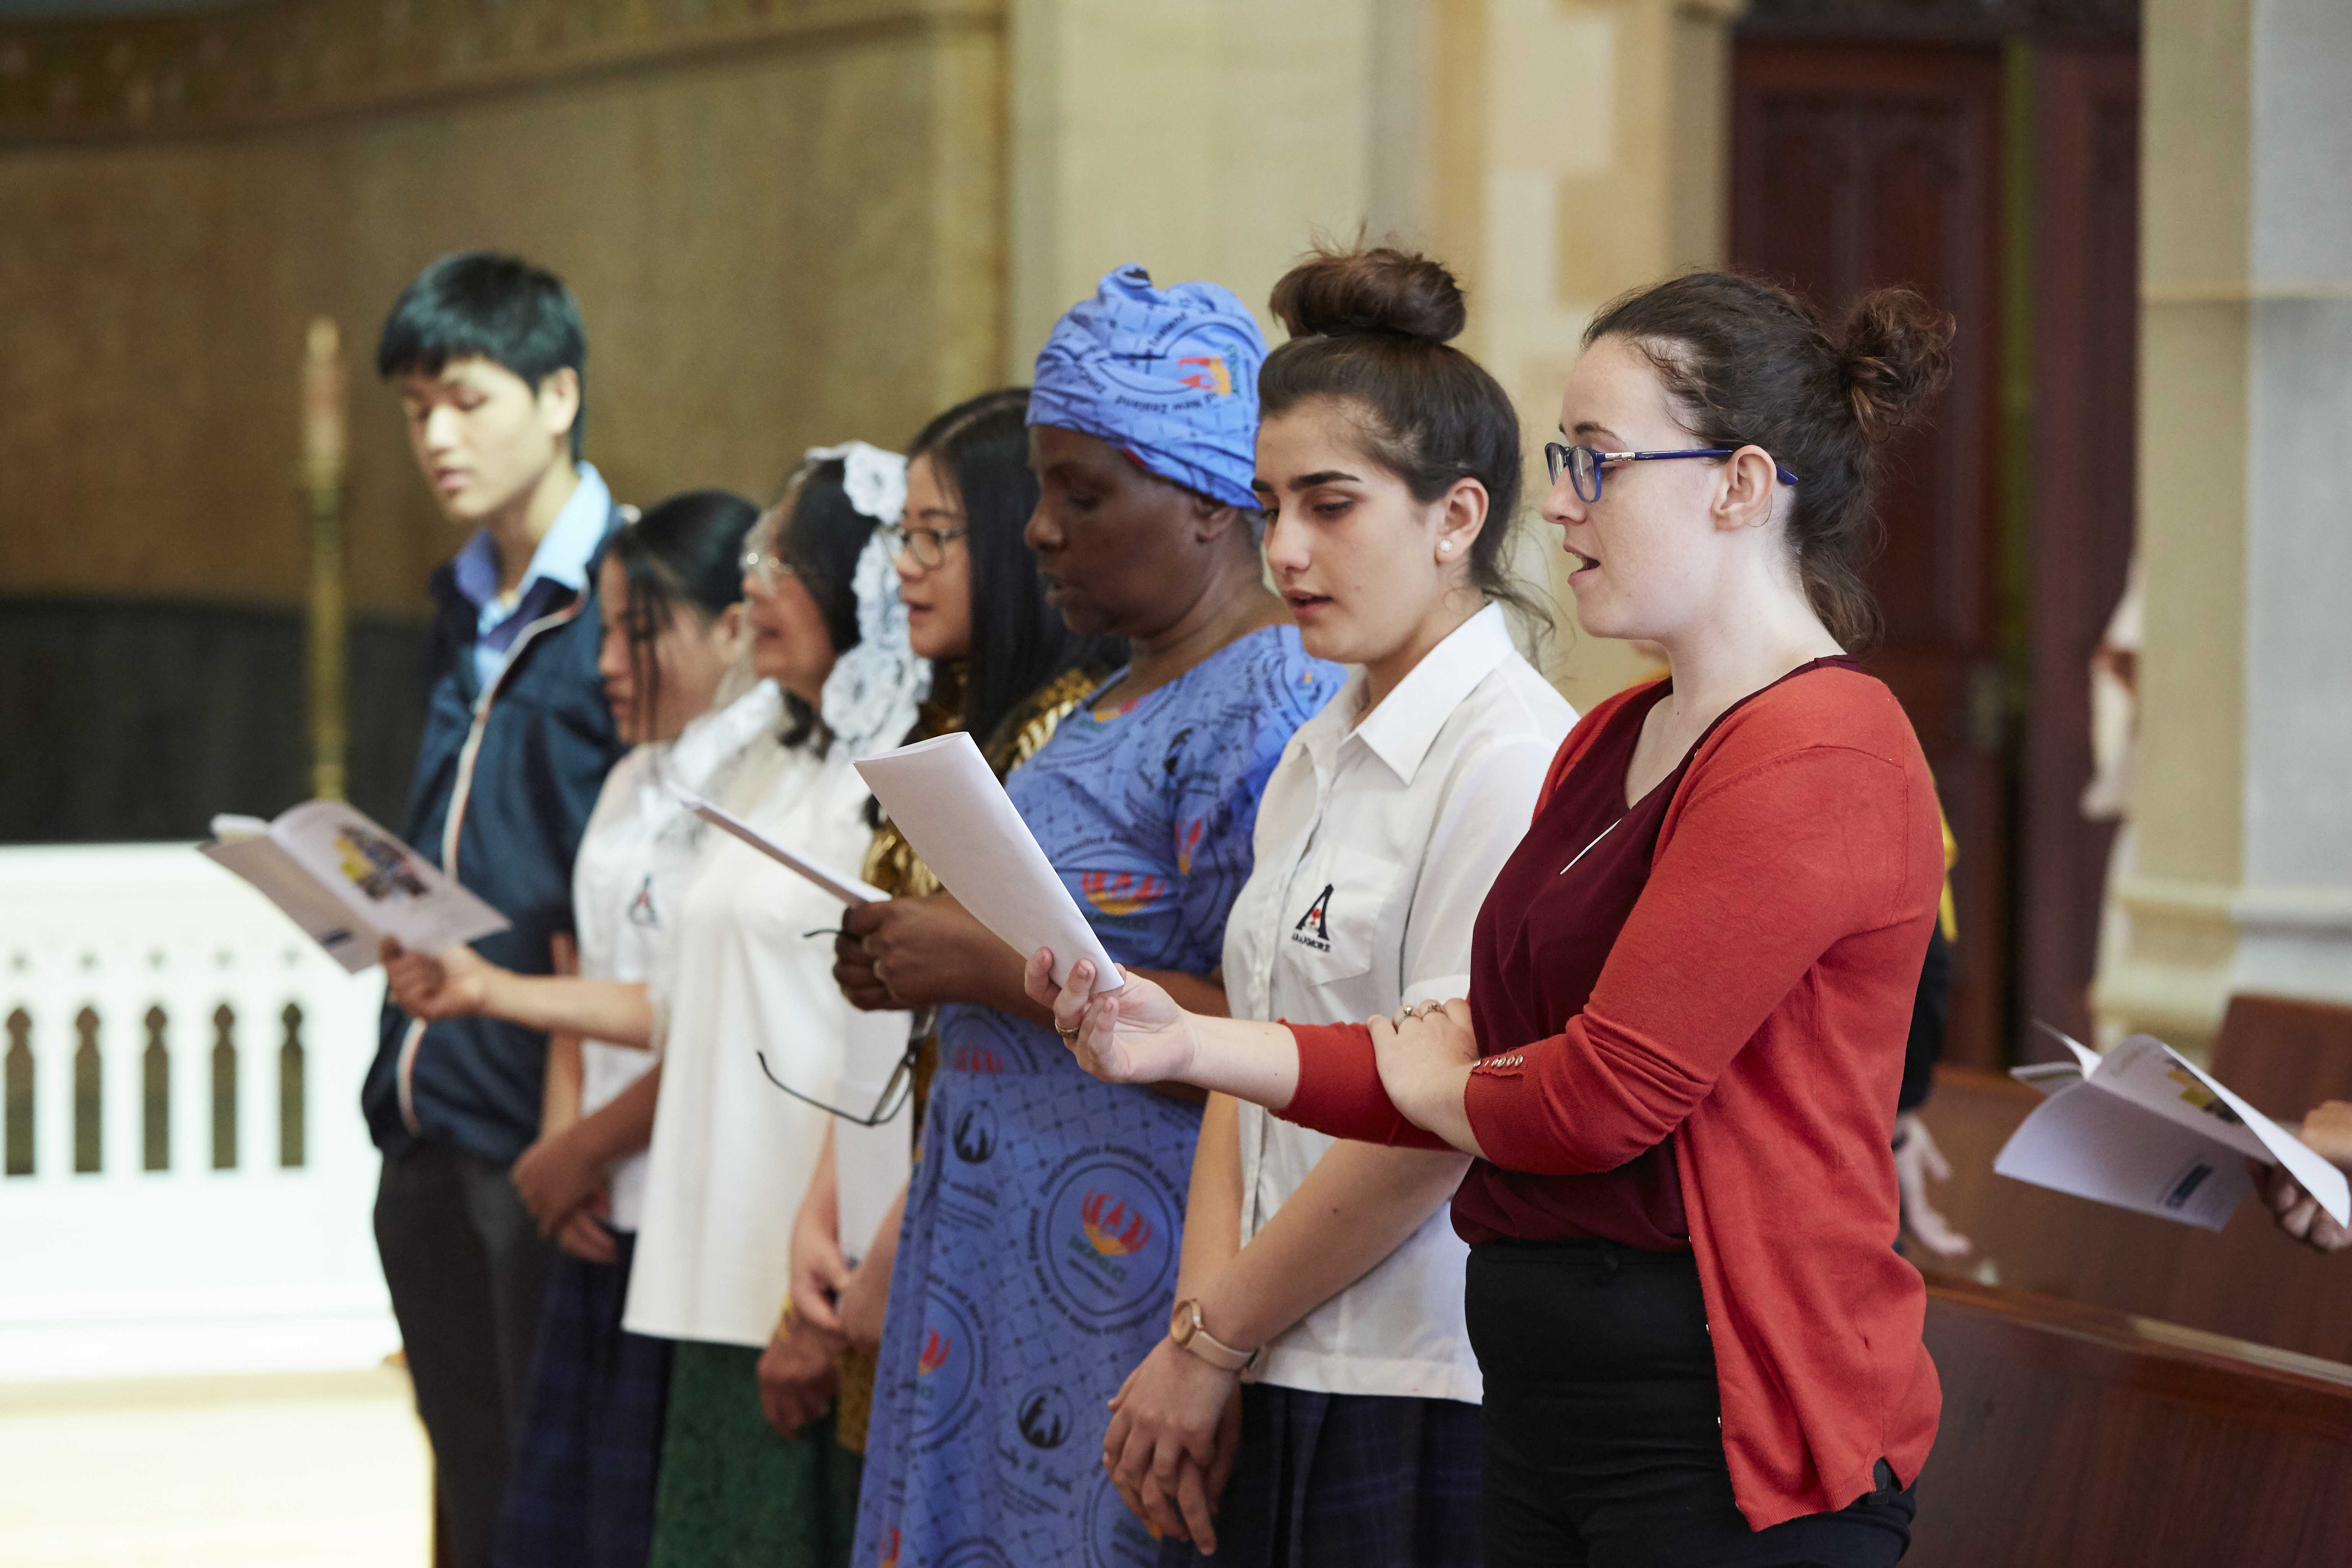 Parishioners from various parishes came together to celebrate the Unity and Diversity Mass at St Mary's Cathedral on 28 October 2018. Photo: Ron Tan.